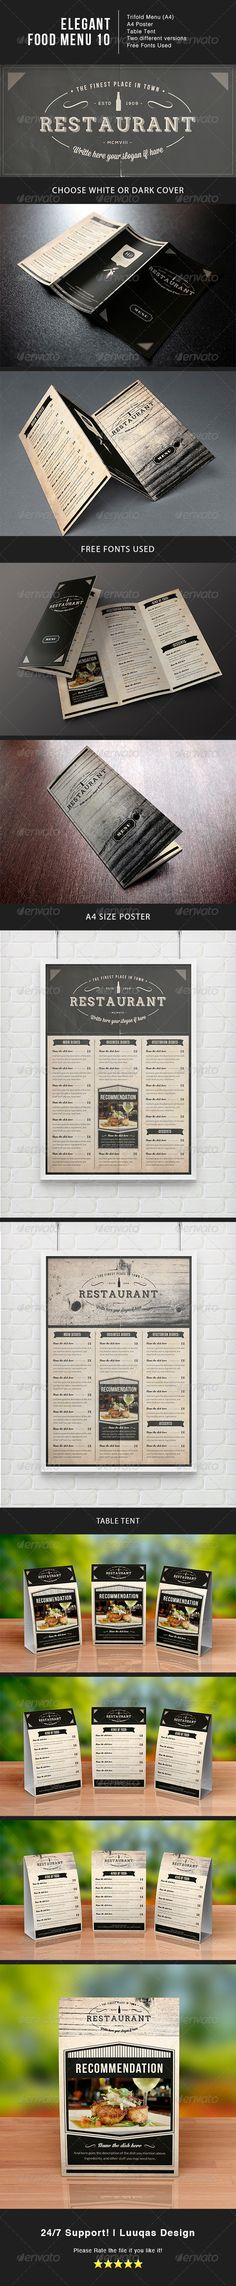 Elegant Food Menu 10 by luuqas Elegant food menu template for your restaurant. Features: Trifold menu Menu PosterTable tent Logo/Stamp included Very Easy Burger Restaurant, Restaurant Menu Design, Restaurant Identity, Tent Logo, Food Menu Template, Menu Templates, Print Templates, Chefs, Coffee Shop Menu